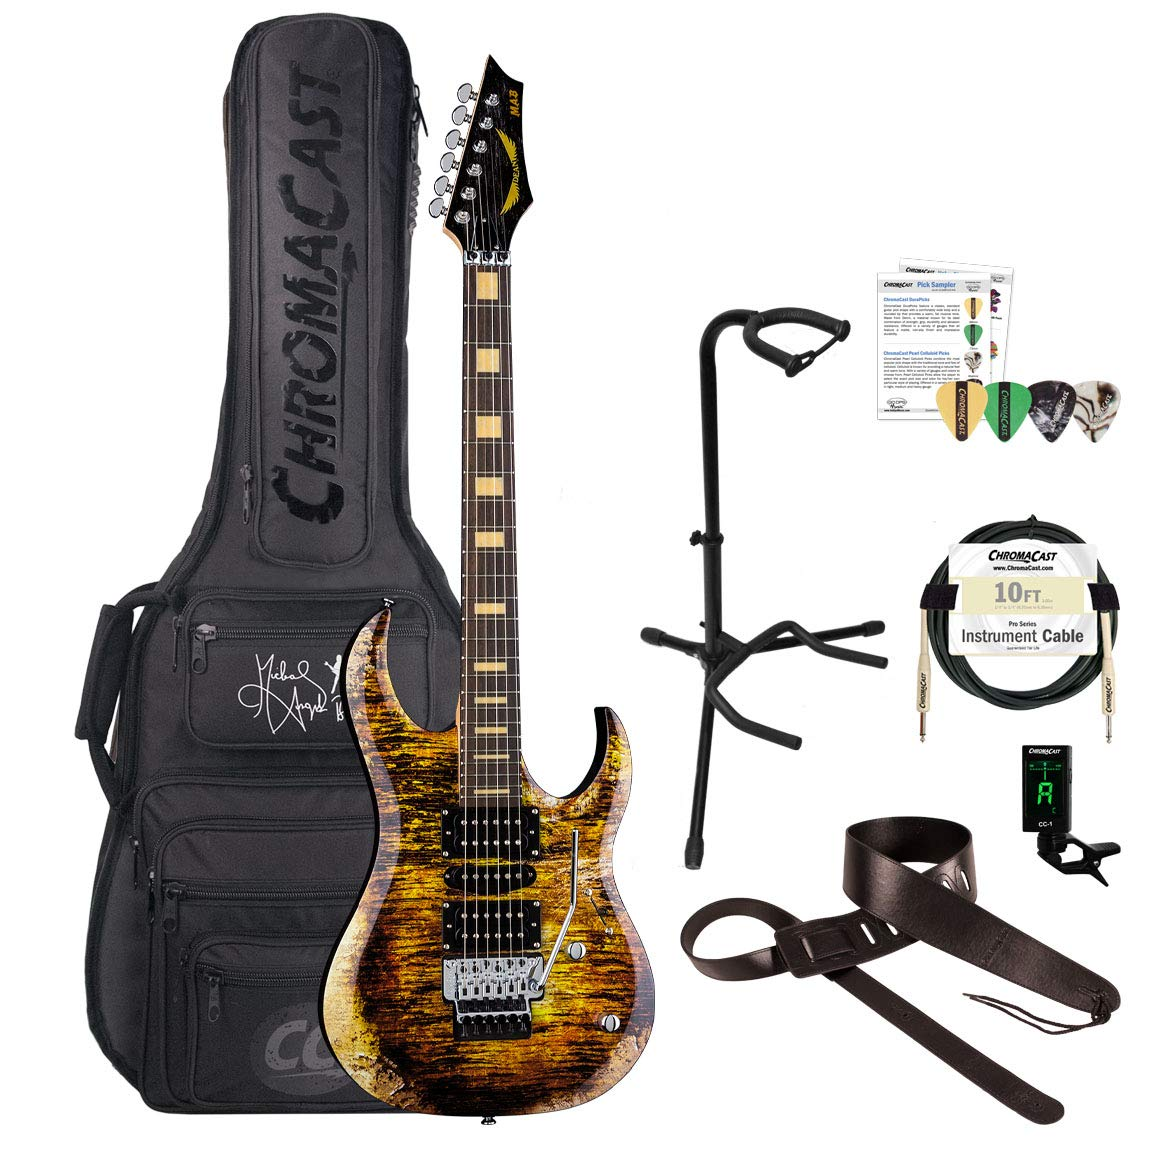 Cheap Dean Michael Angelo Batio Signature Solid-Body Gold Relic Electric Guitar with MAB Signature Padded Gig Bag Clip-On Tuner Strap Stand Picks & Cable Black Friday & Cyber Monday 2019